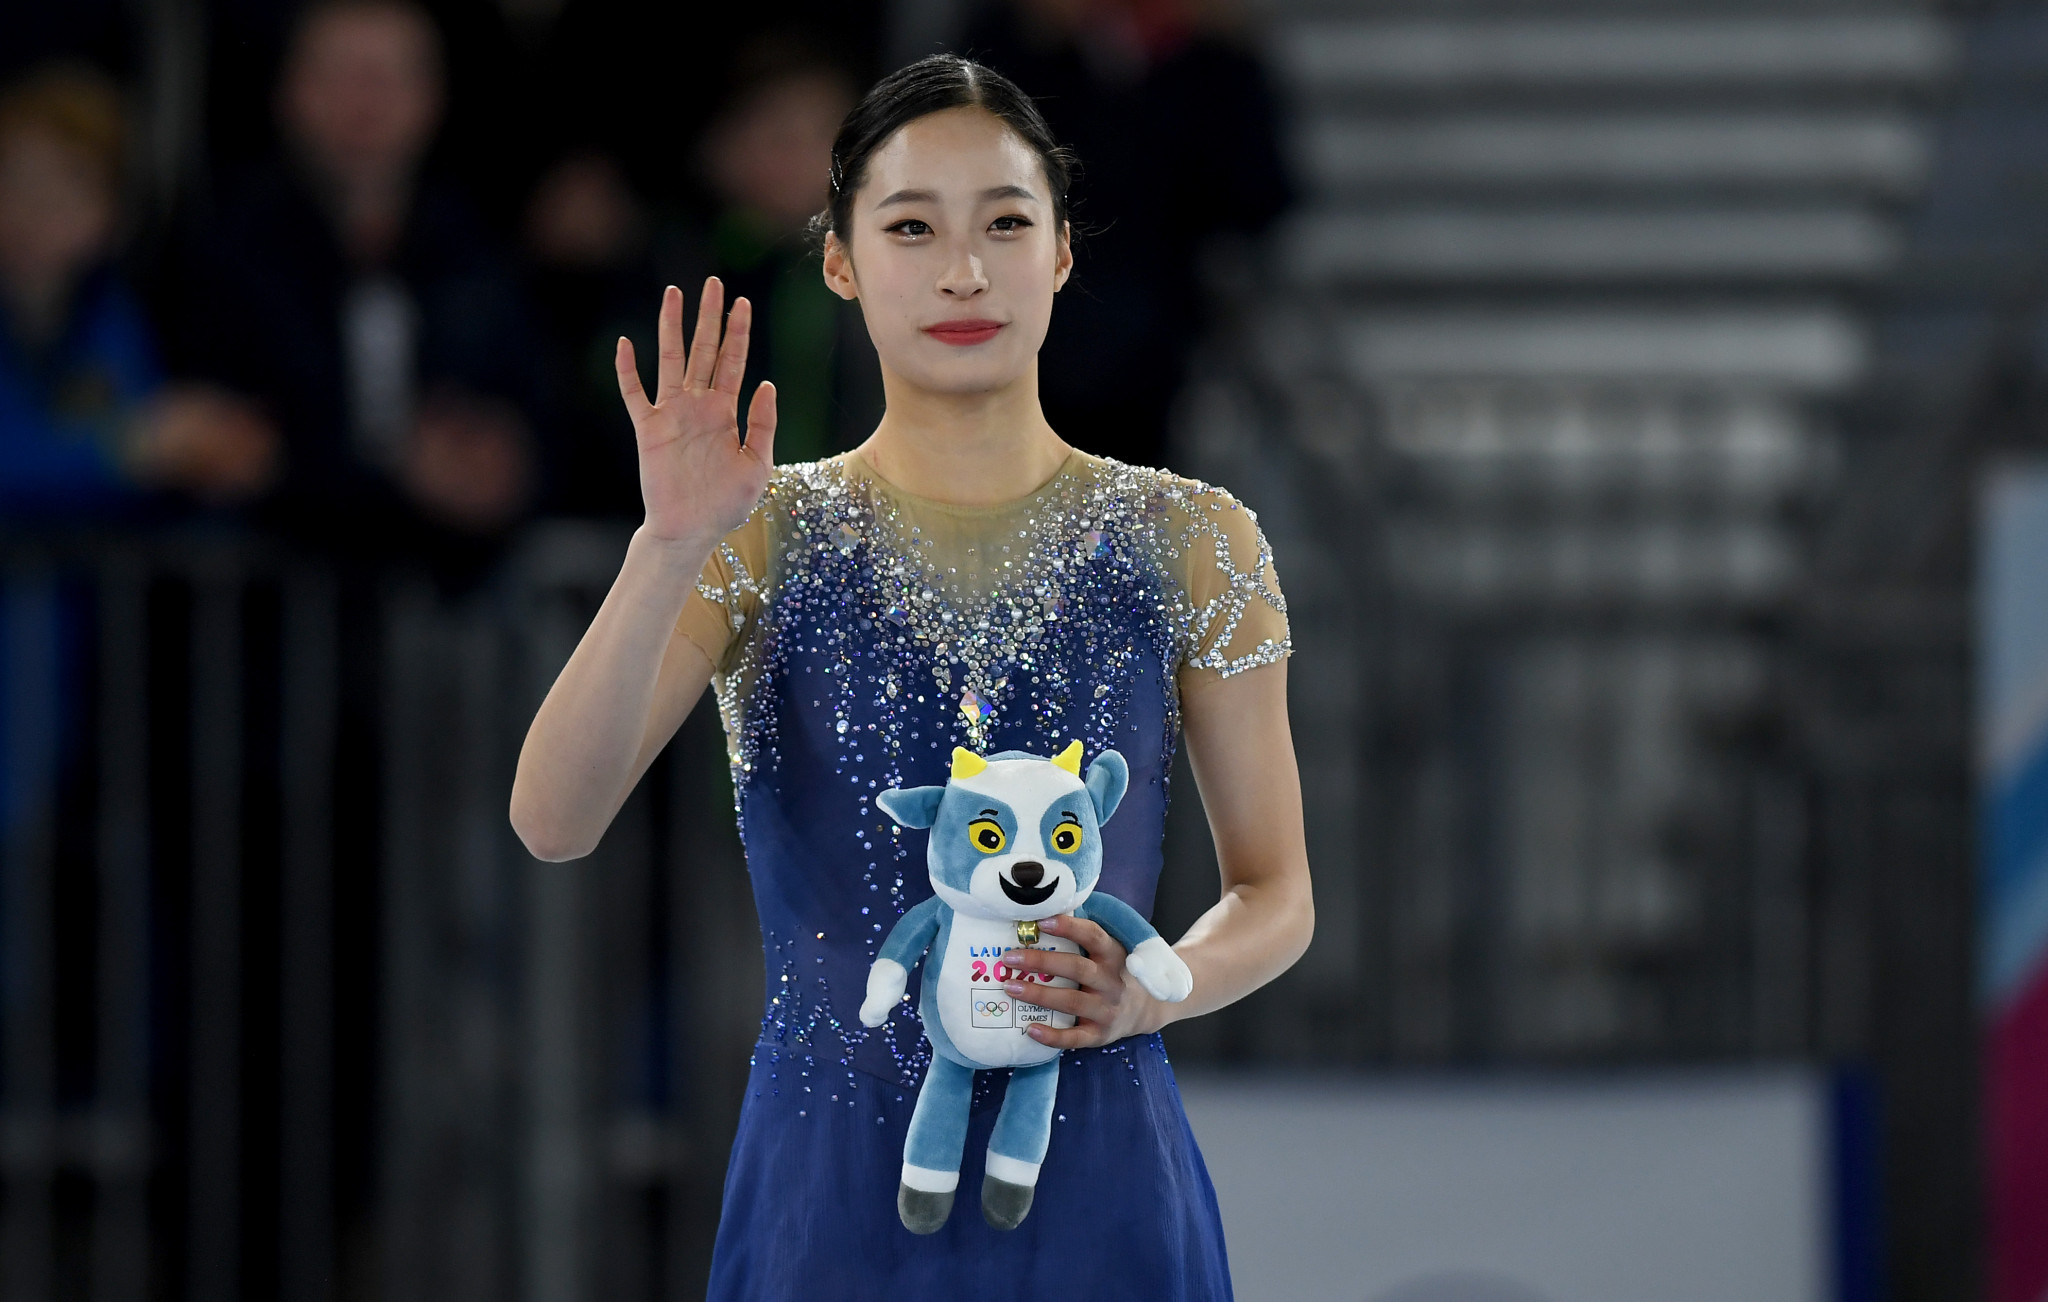 South Korean star You clinches women's figure skating title at Lausanne 2020